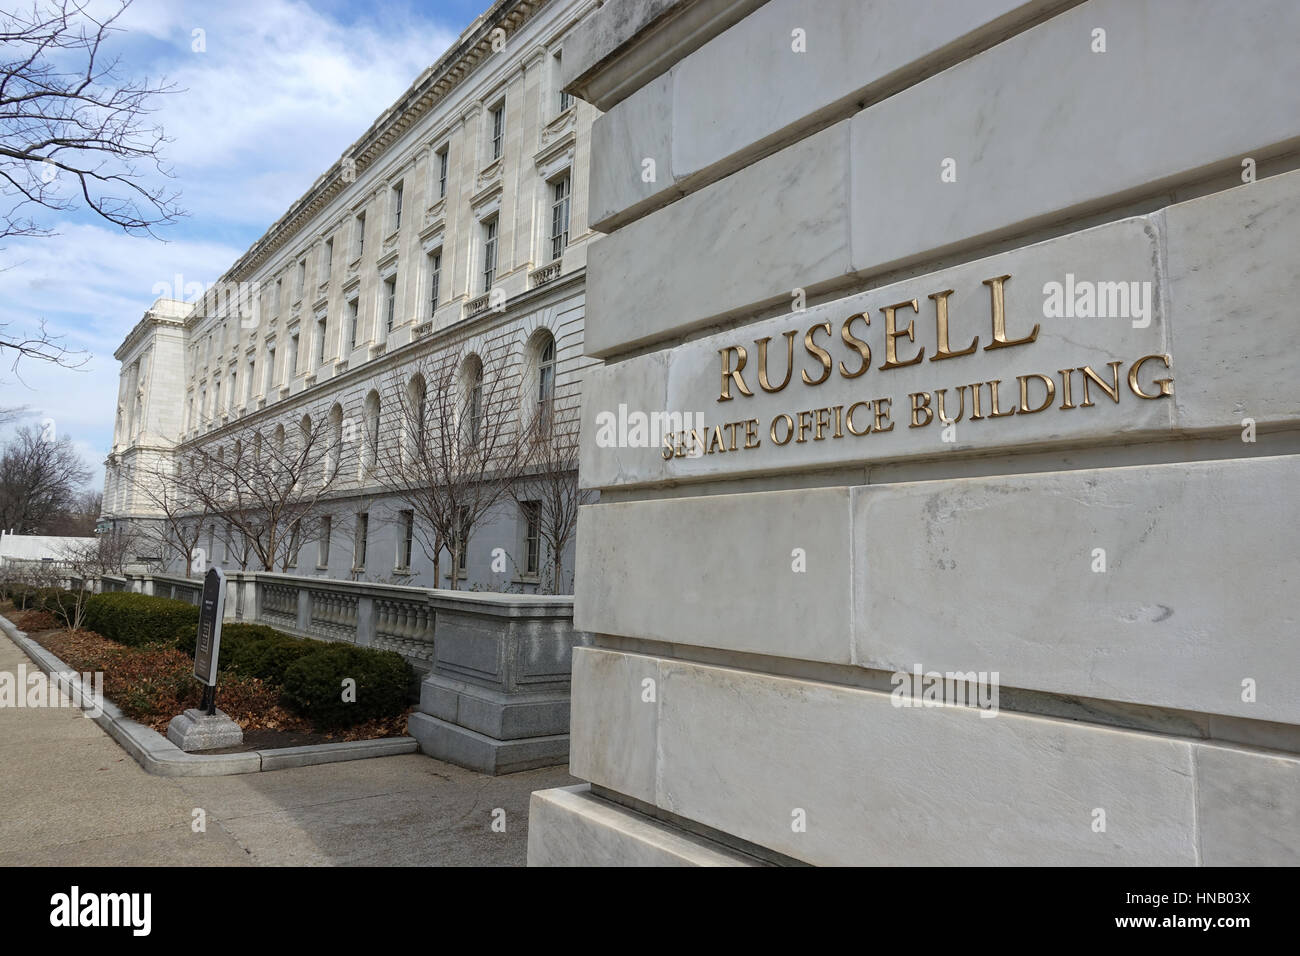 Image result for pic of russell building